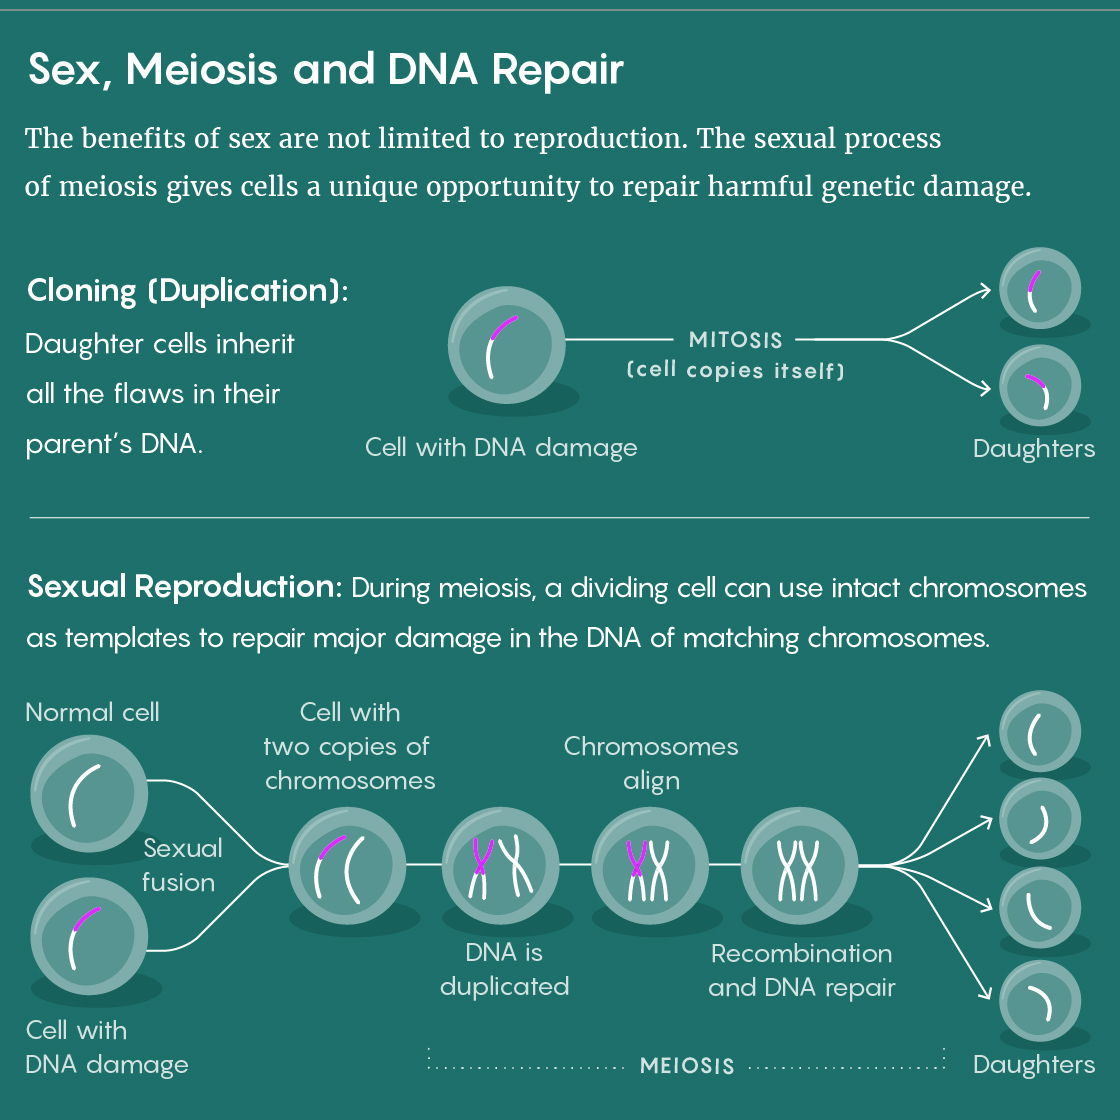 A figure that shows how the stage of sexual reproduction called meiosis allows repairs to damaged DNA.